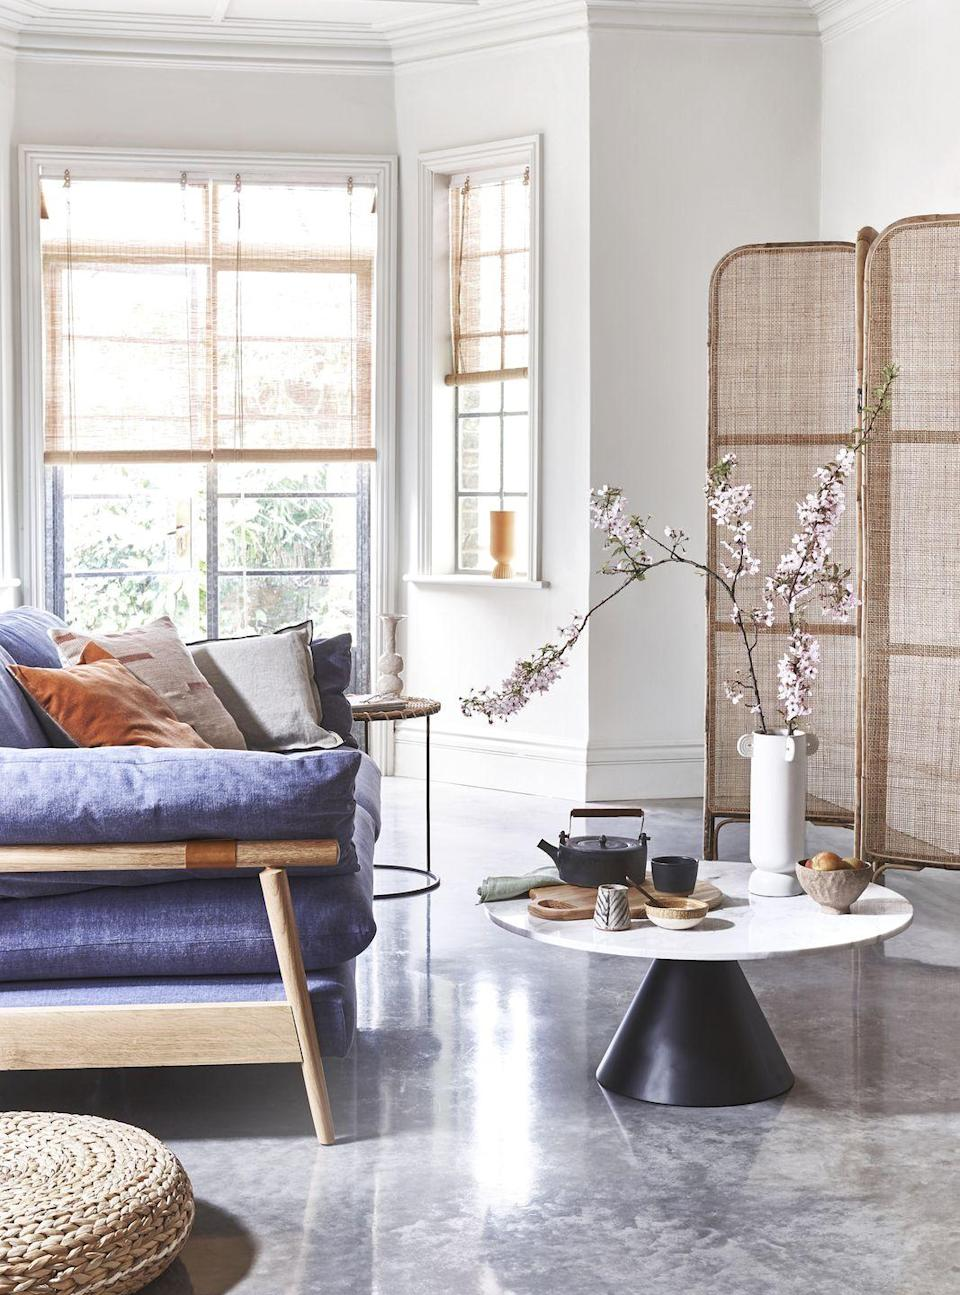 <p>On-trend materials like marble and polished concrete can feel quite cool, so balance them out with delicate, organic details such as bamboo blinds and rattan furniture.</p>